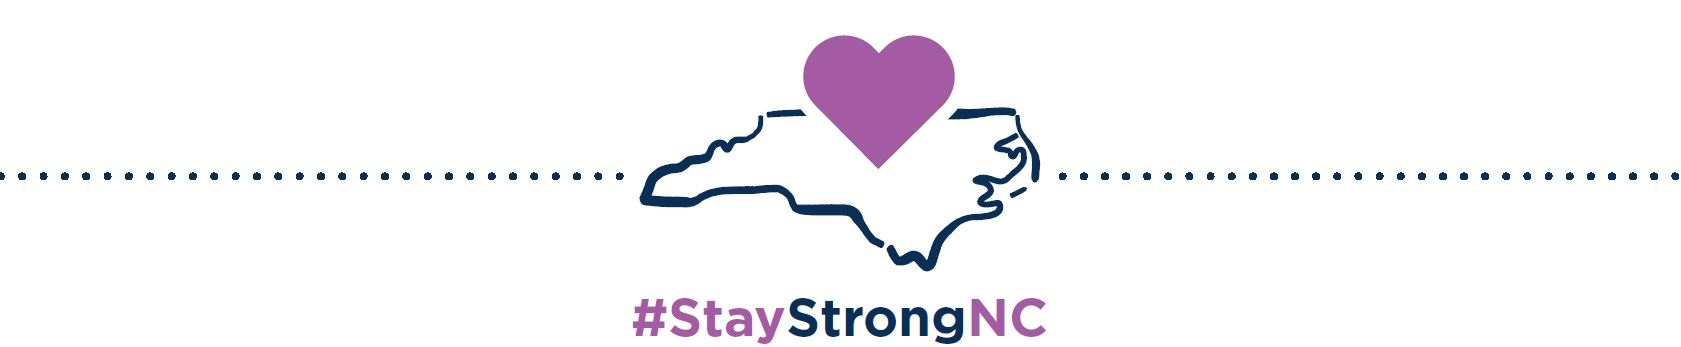 STAY STRONG NC BANNER